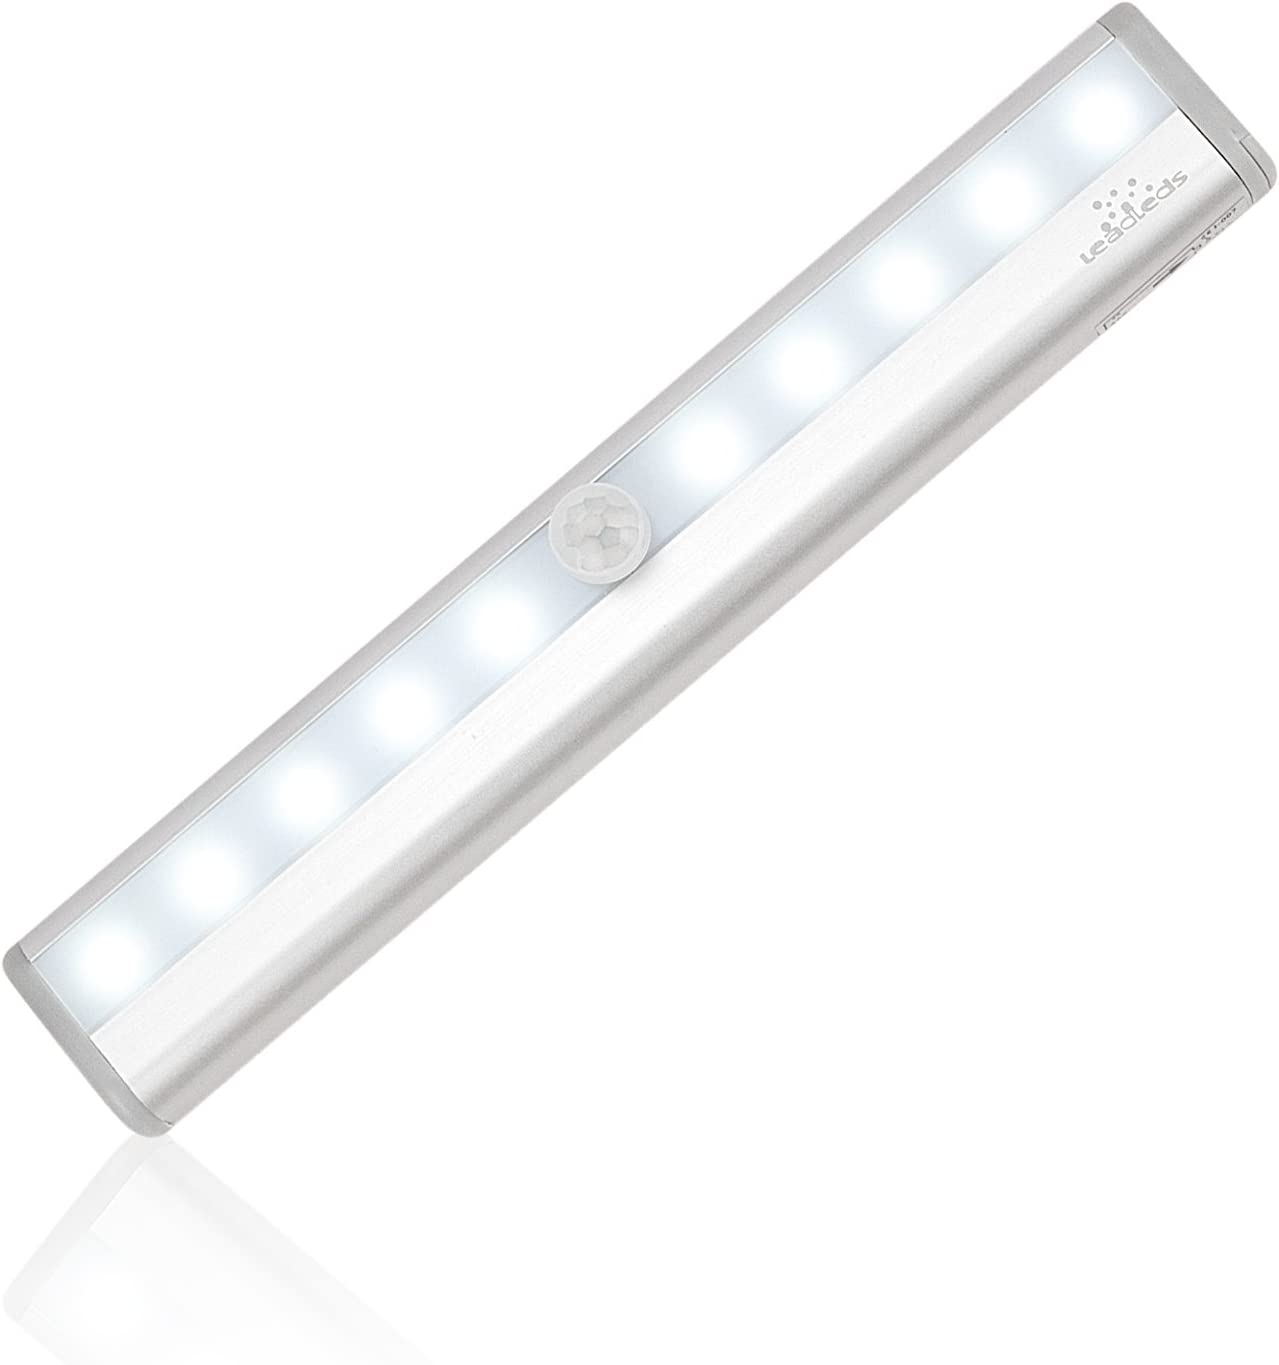 Leadleds I-007 10-LED Wireless Motion Sensor Light Automatic with Magnetic Strip, Battery Operated, Portable for Closet, Door, Stairs Light, Hallway, Step Lights